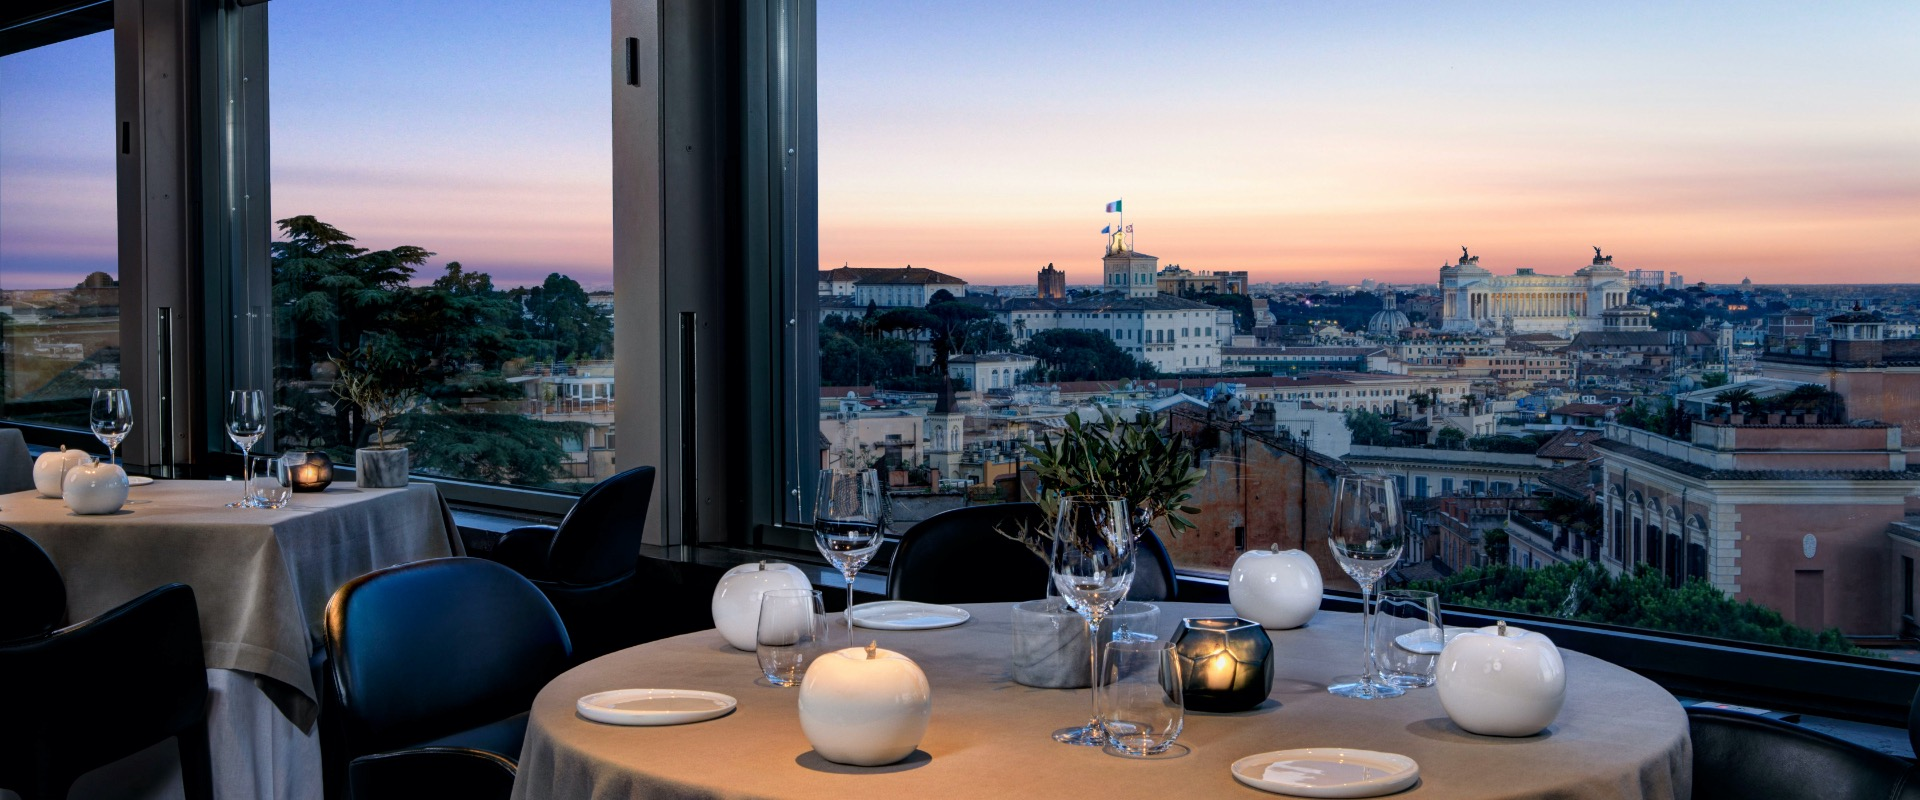 Top 10 Luxury Hotels in Rome